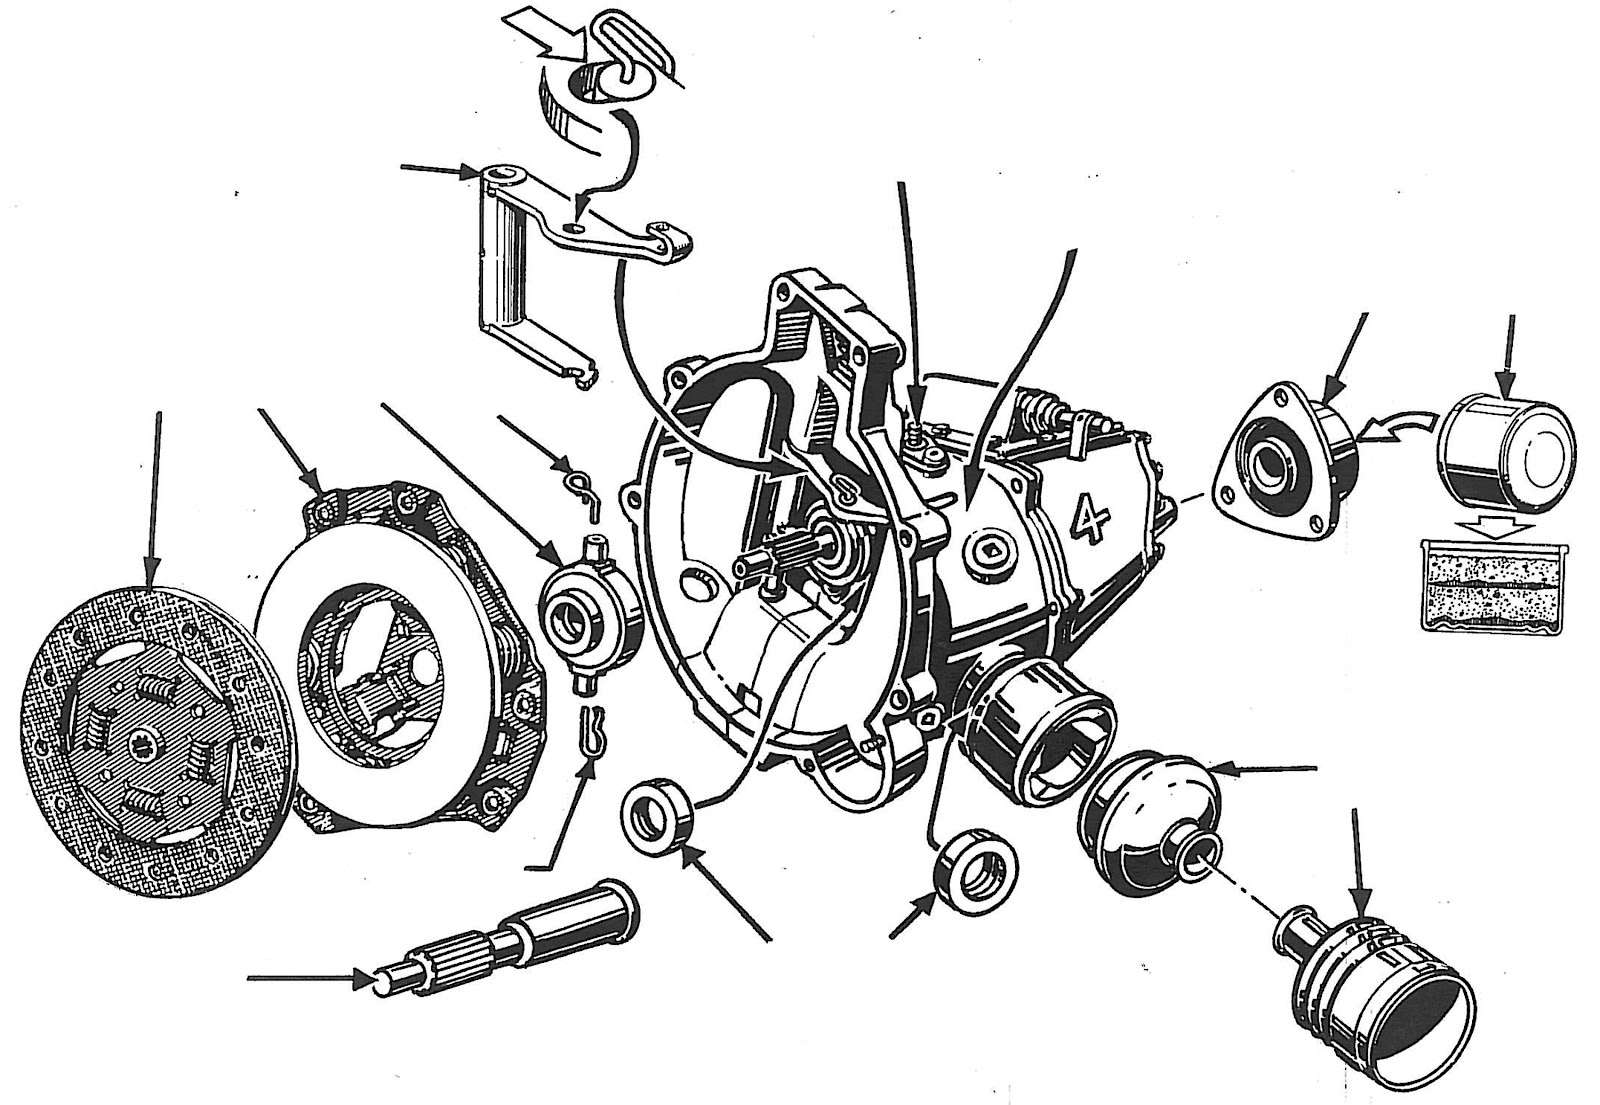 Vw Engine Rebuild Book Vw Free Engine Image For User